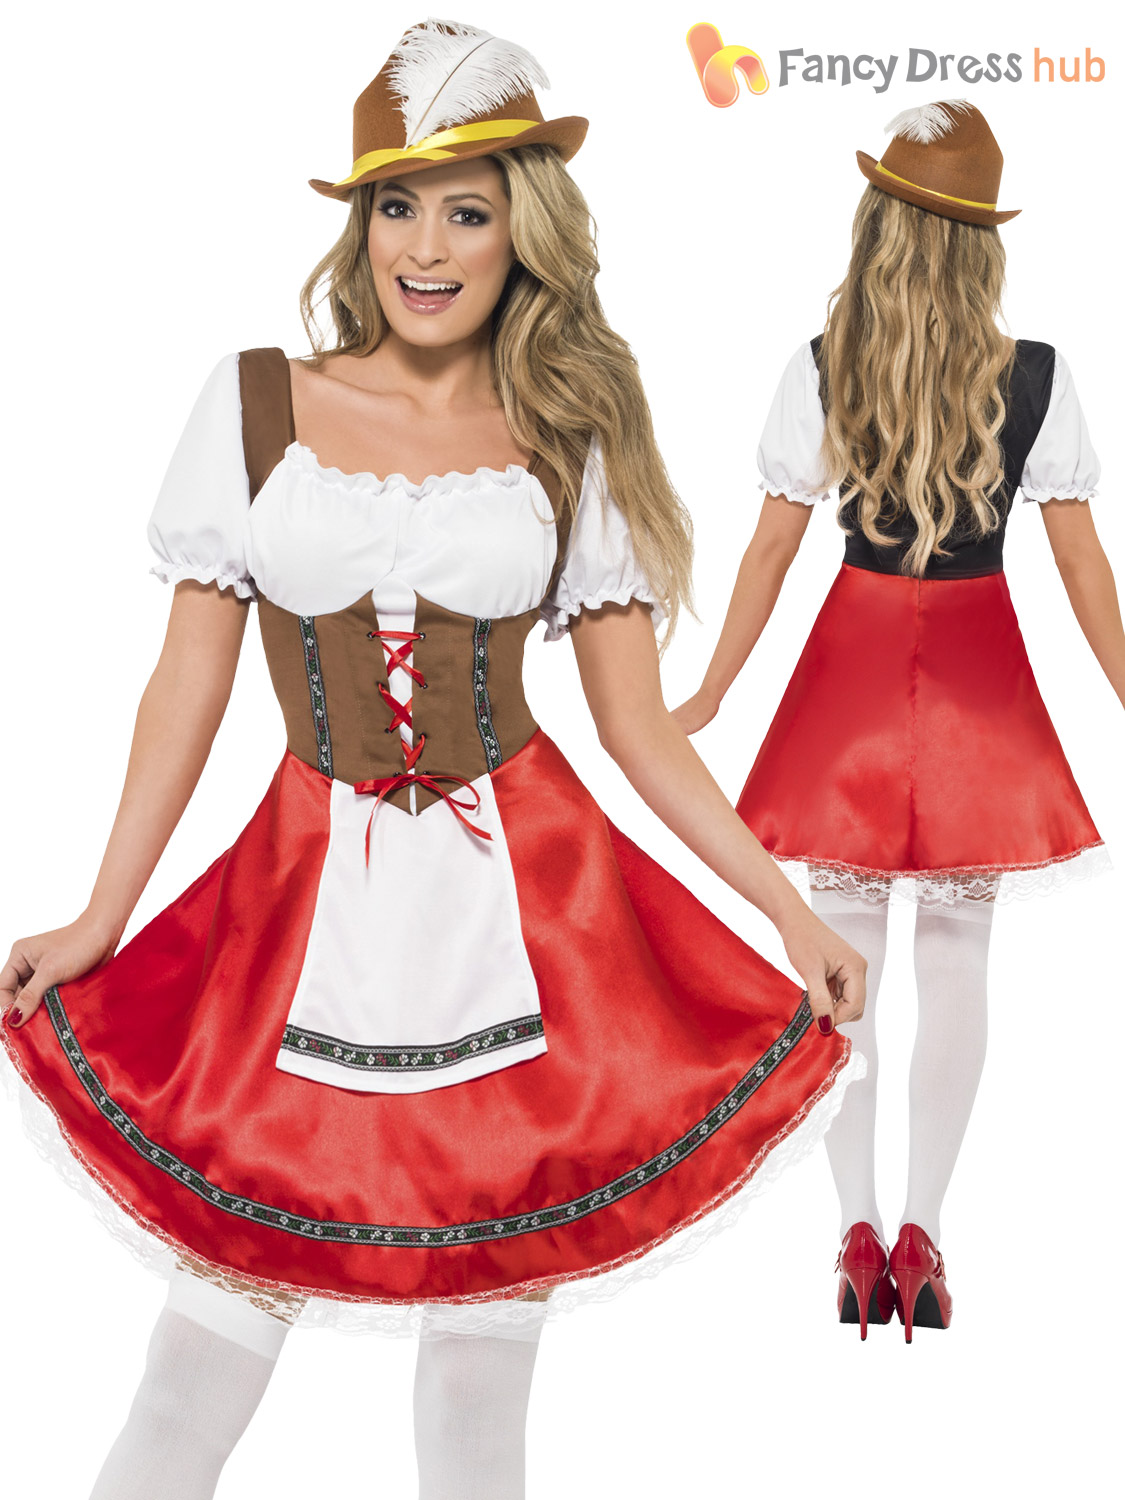 Ladies-Oktoberfest-Fancy-Dress-German-Bavarian-Octoberfest-Beer-  sc 1 st  eBay & Ladies Oktoberfest Fancy Dress German Bavarian Octoberfest Beer Maid ...